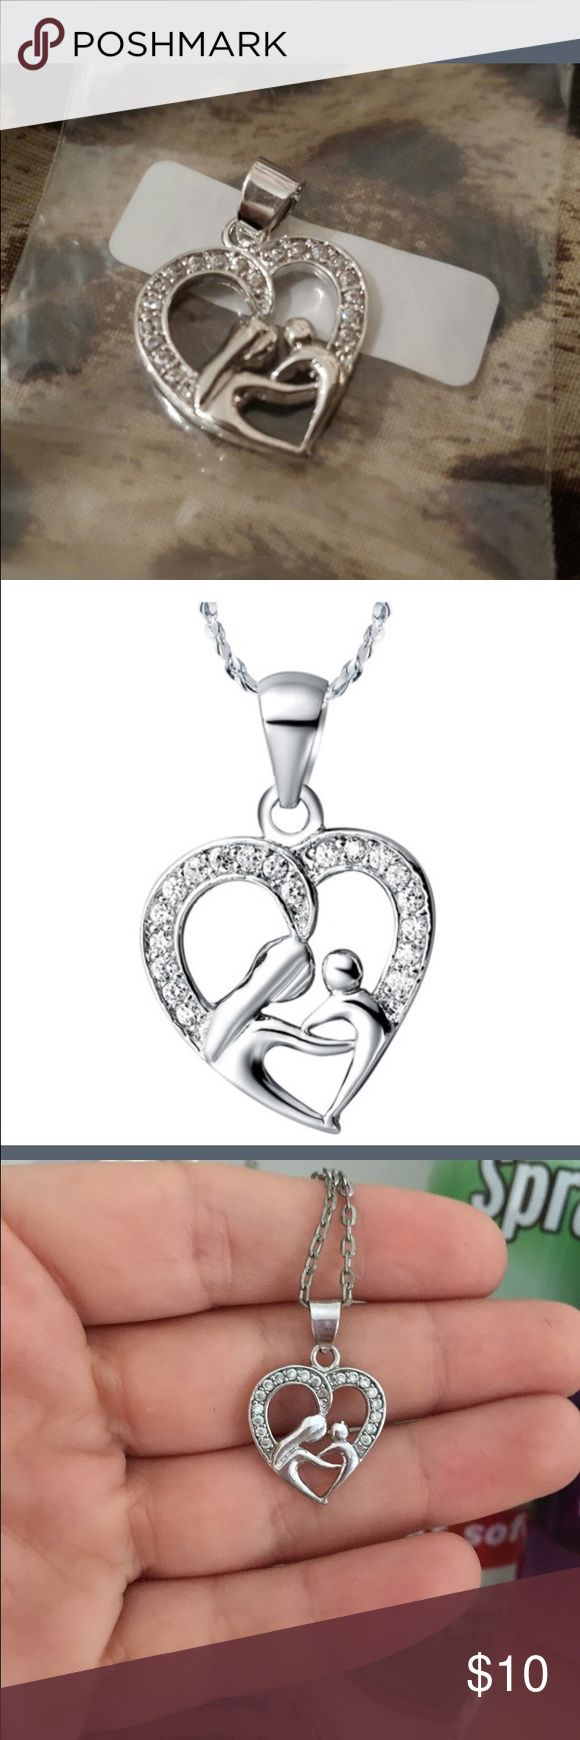 Brand new mother and child pendant ❤️ Silver mother and child pendant gorgeous perfect for mom 😄💜 Jewelry Necklaces